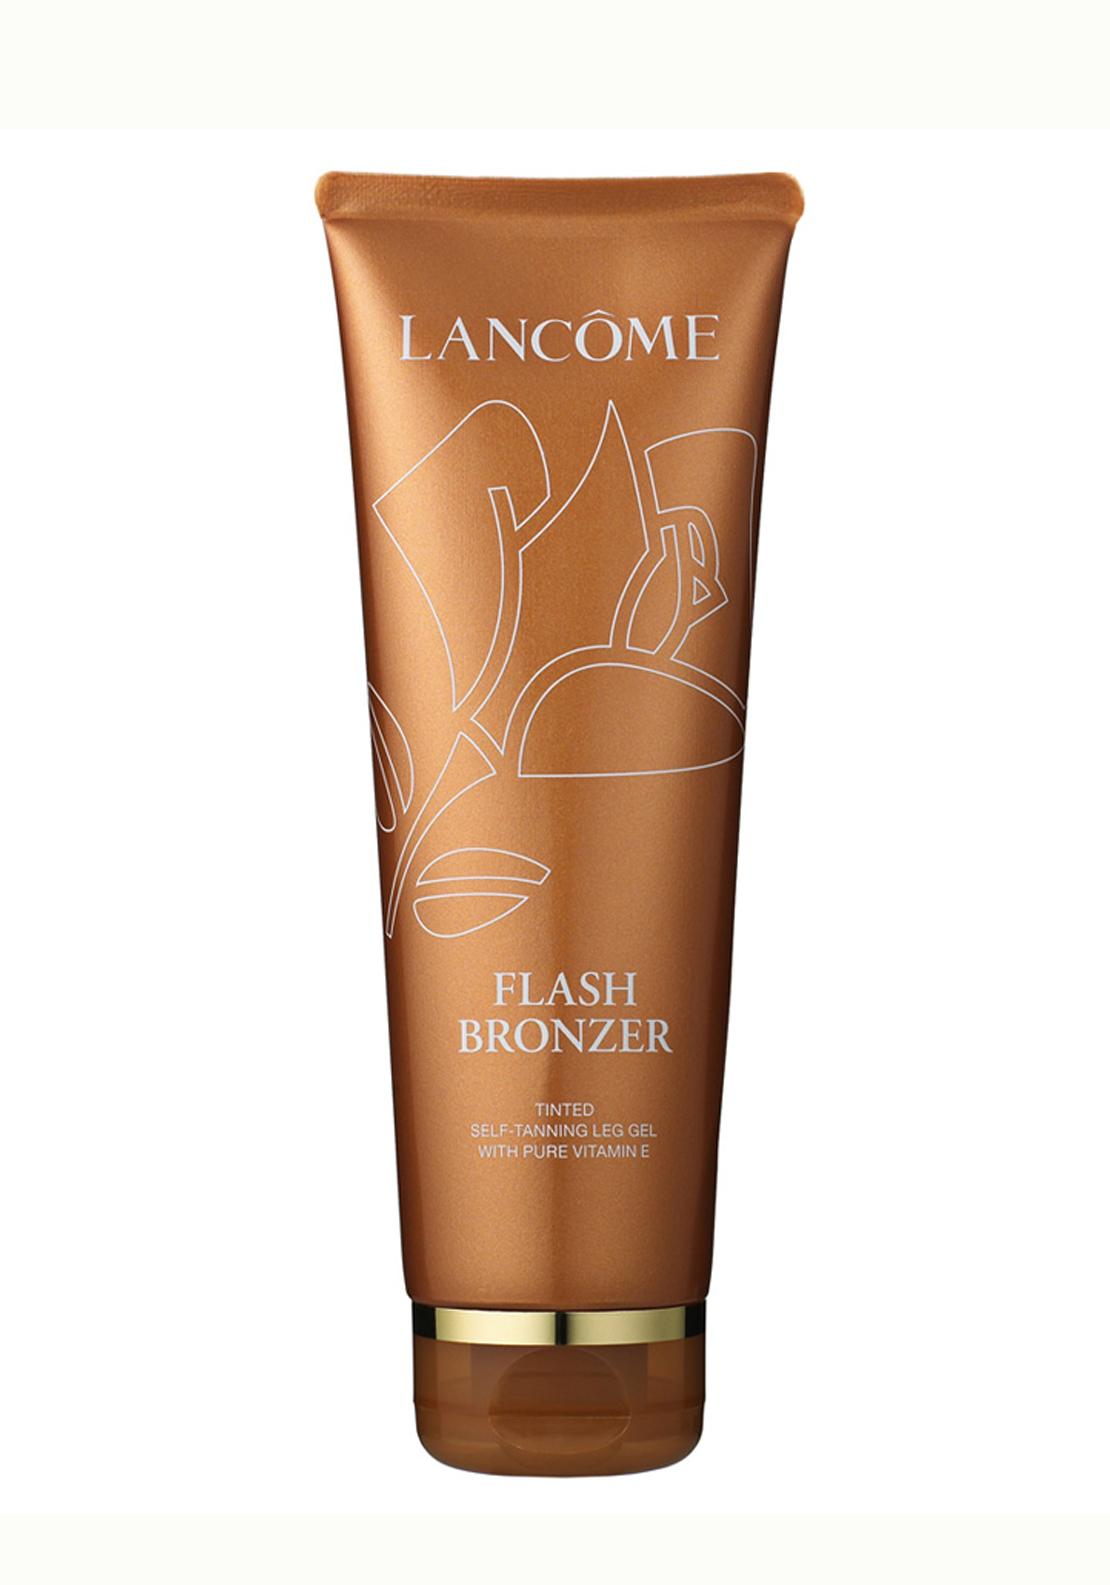 Lancome Flash Bronzer Self-Tanning Leg Gel 125ml Lancome